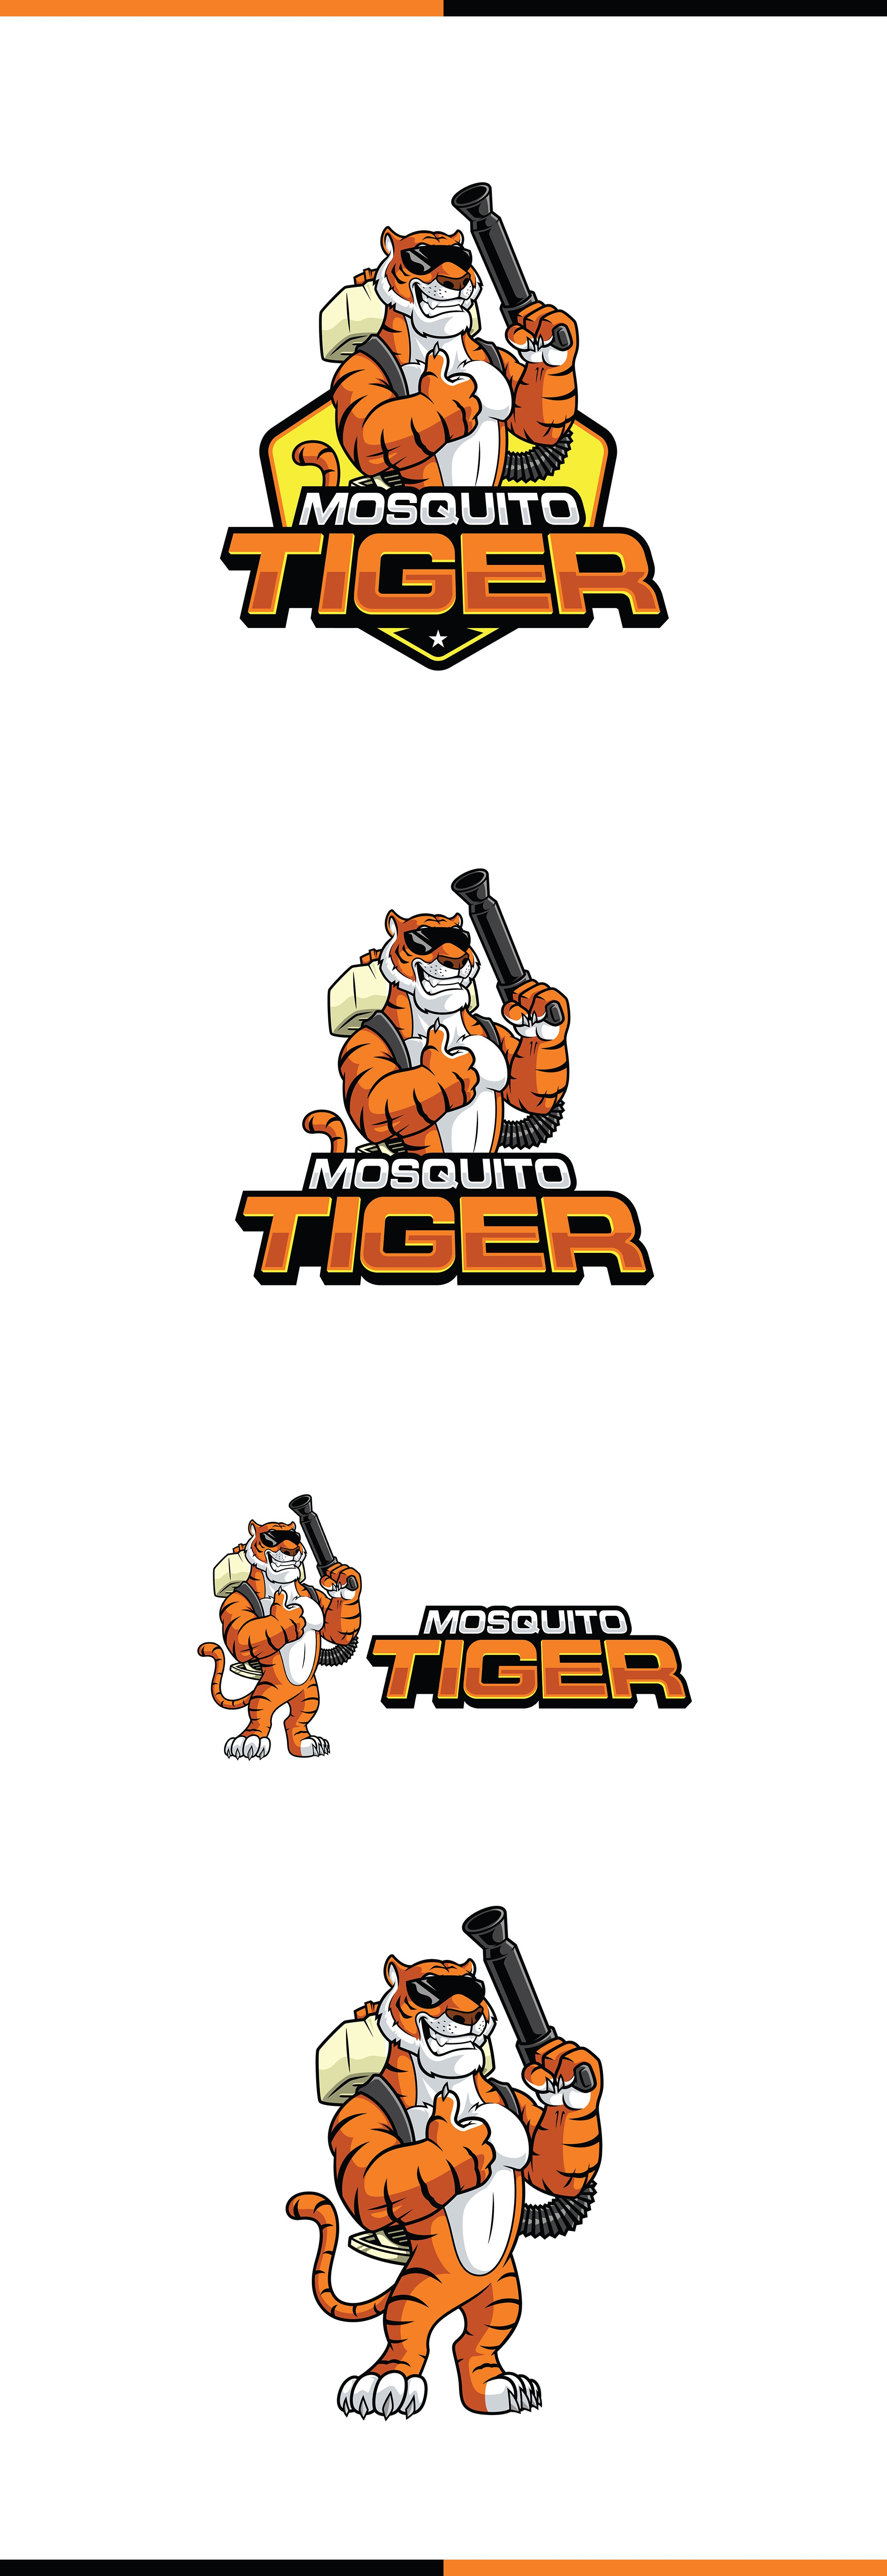 Mosquito Tiger pest control. Located in Tampa. Have fun with it